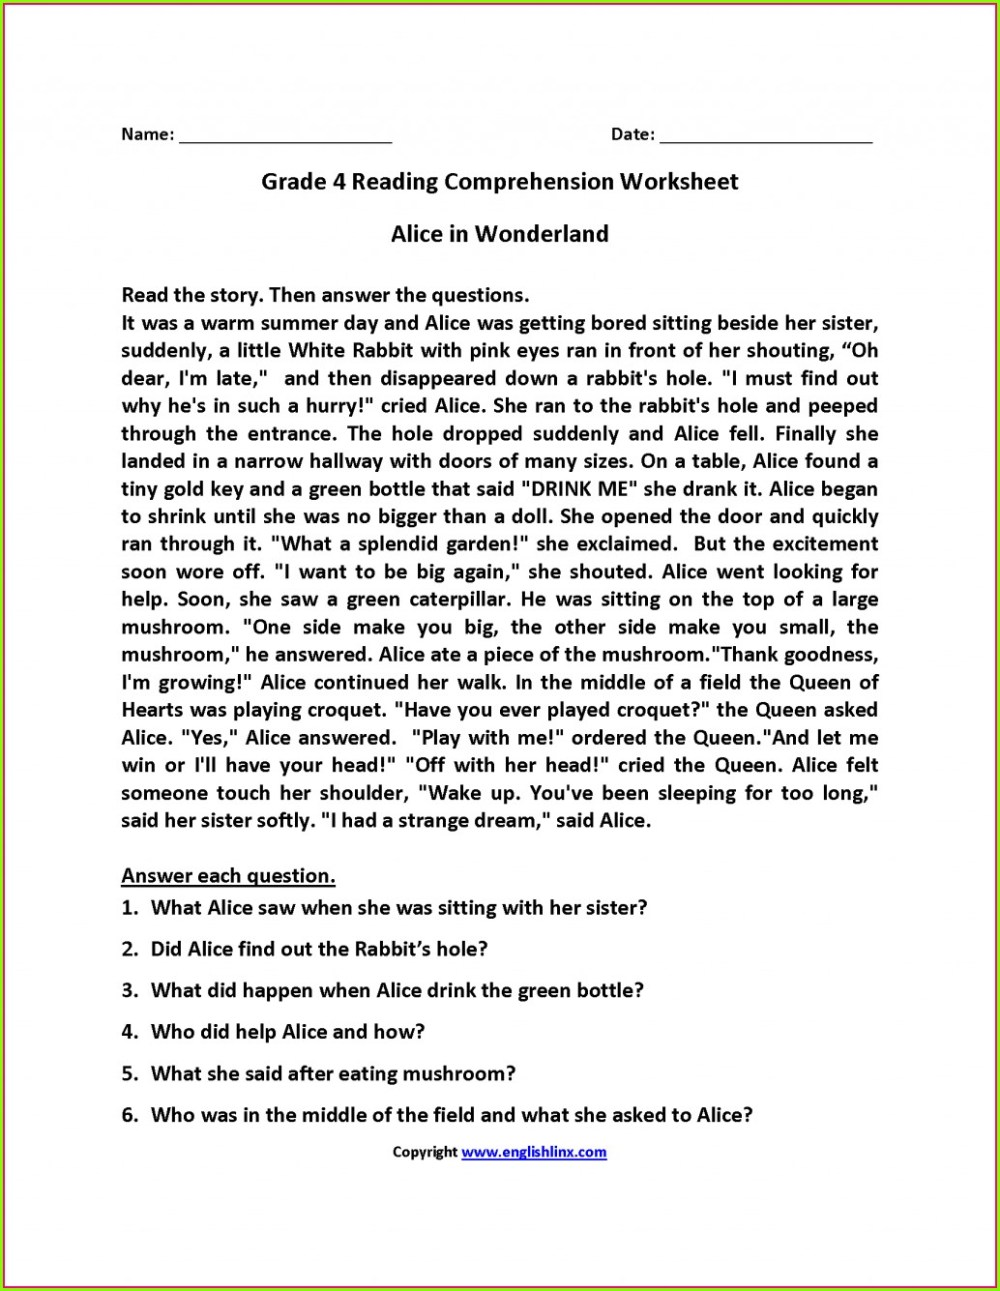 medium resolution of Reading Comp Worksheets 6th Grade   Printable Worksheets and Activities for  Teachers